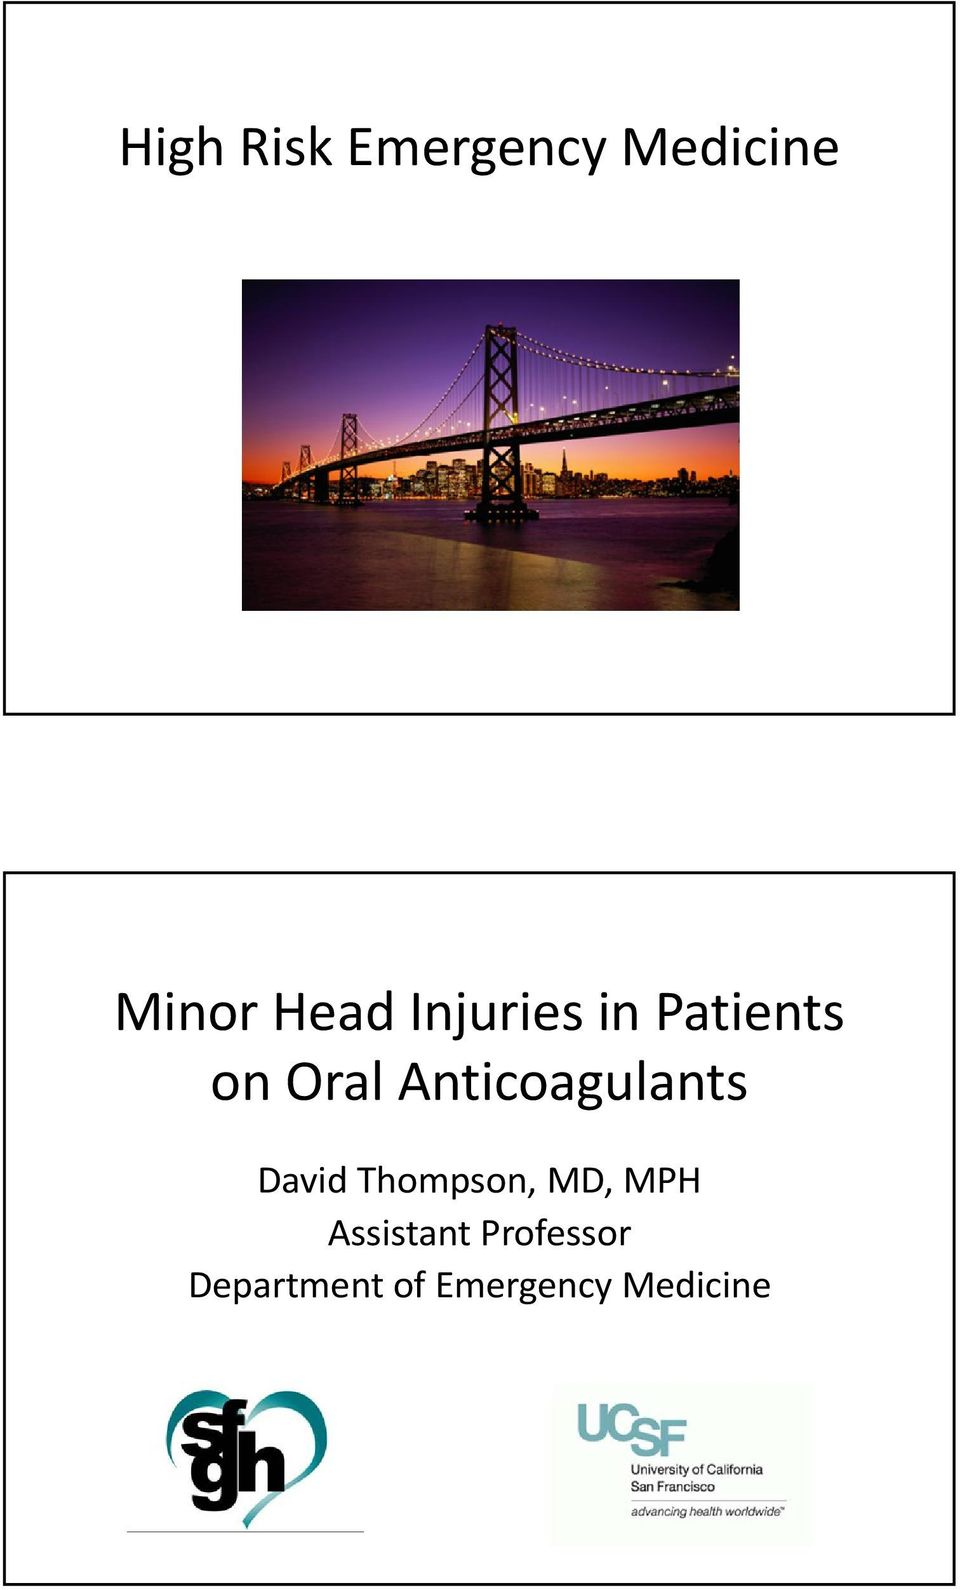 Anticoagulants David Thompson, MD, MPH